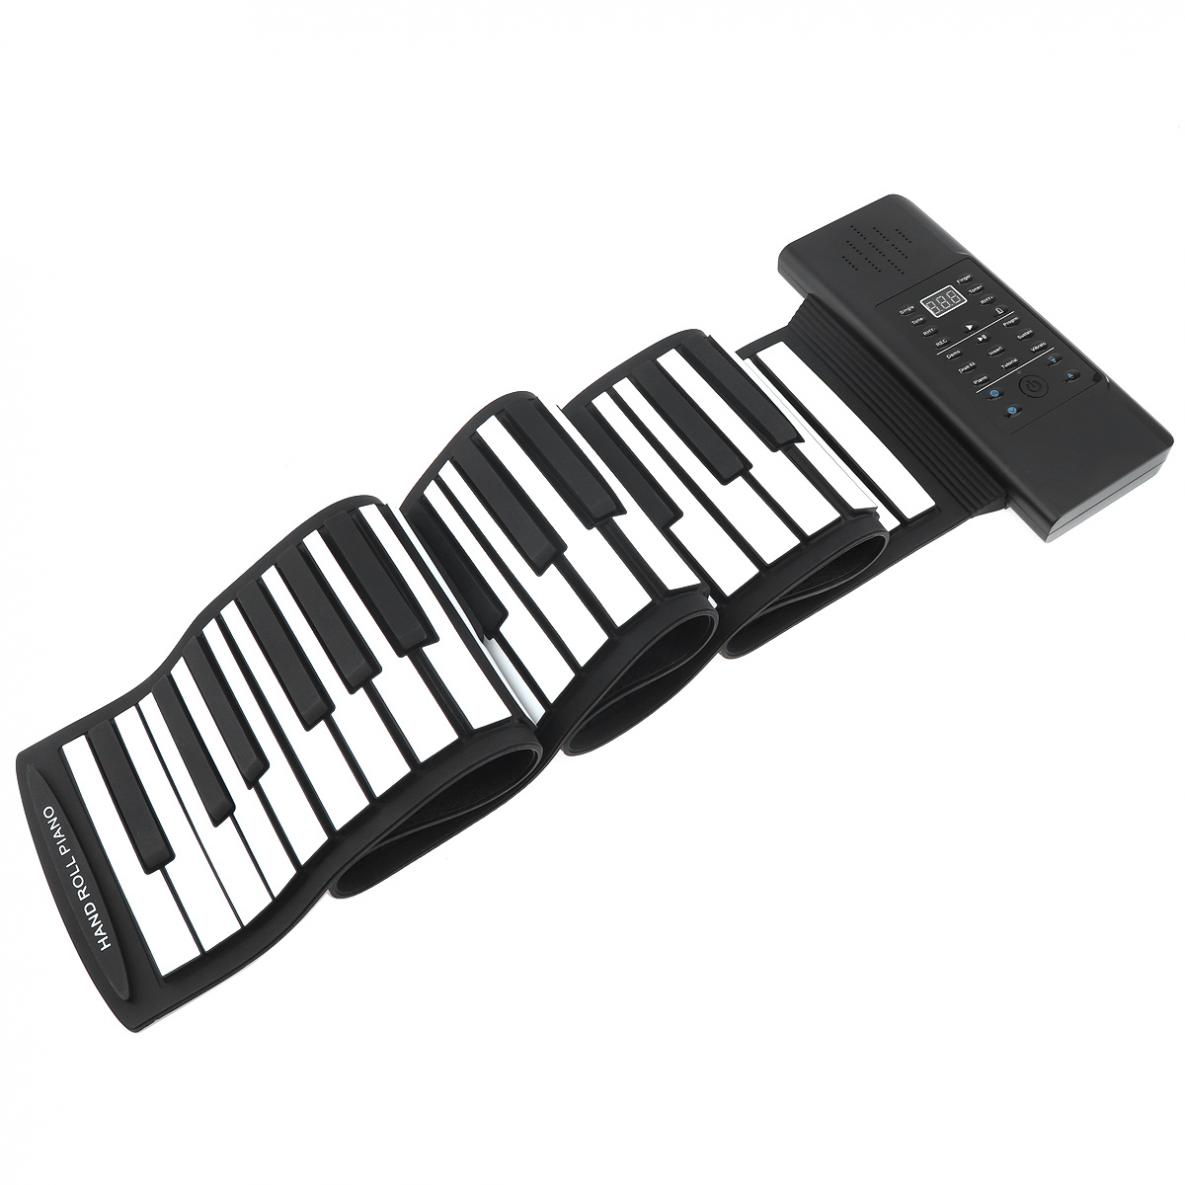 88 Keys USB MIDI Output Roll Up Piano Rechargeable Electronic Flexible Keyboard Organ Built-in Speaker with Sustain Pedal enlarge